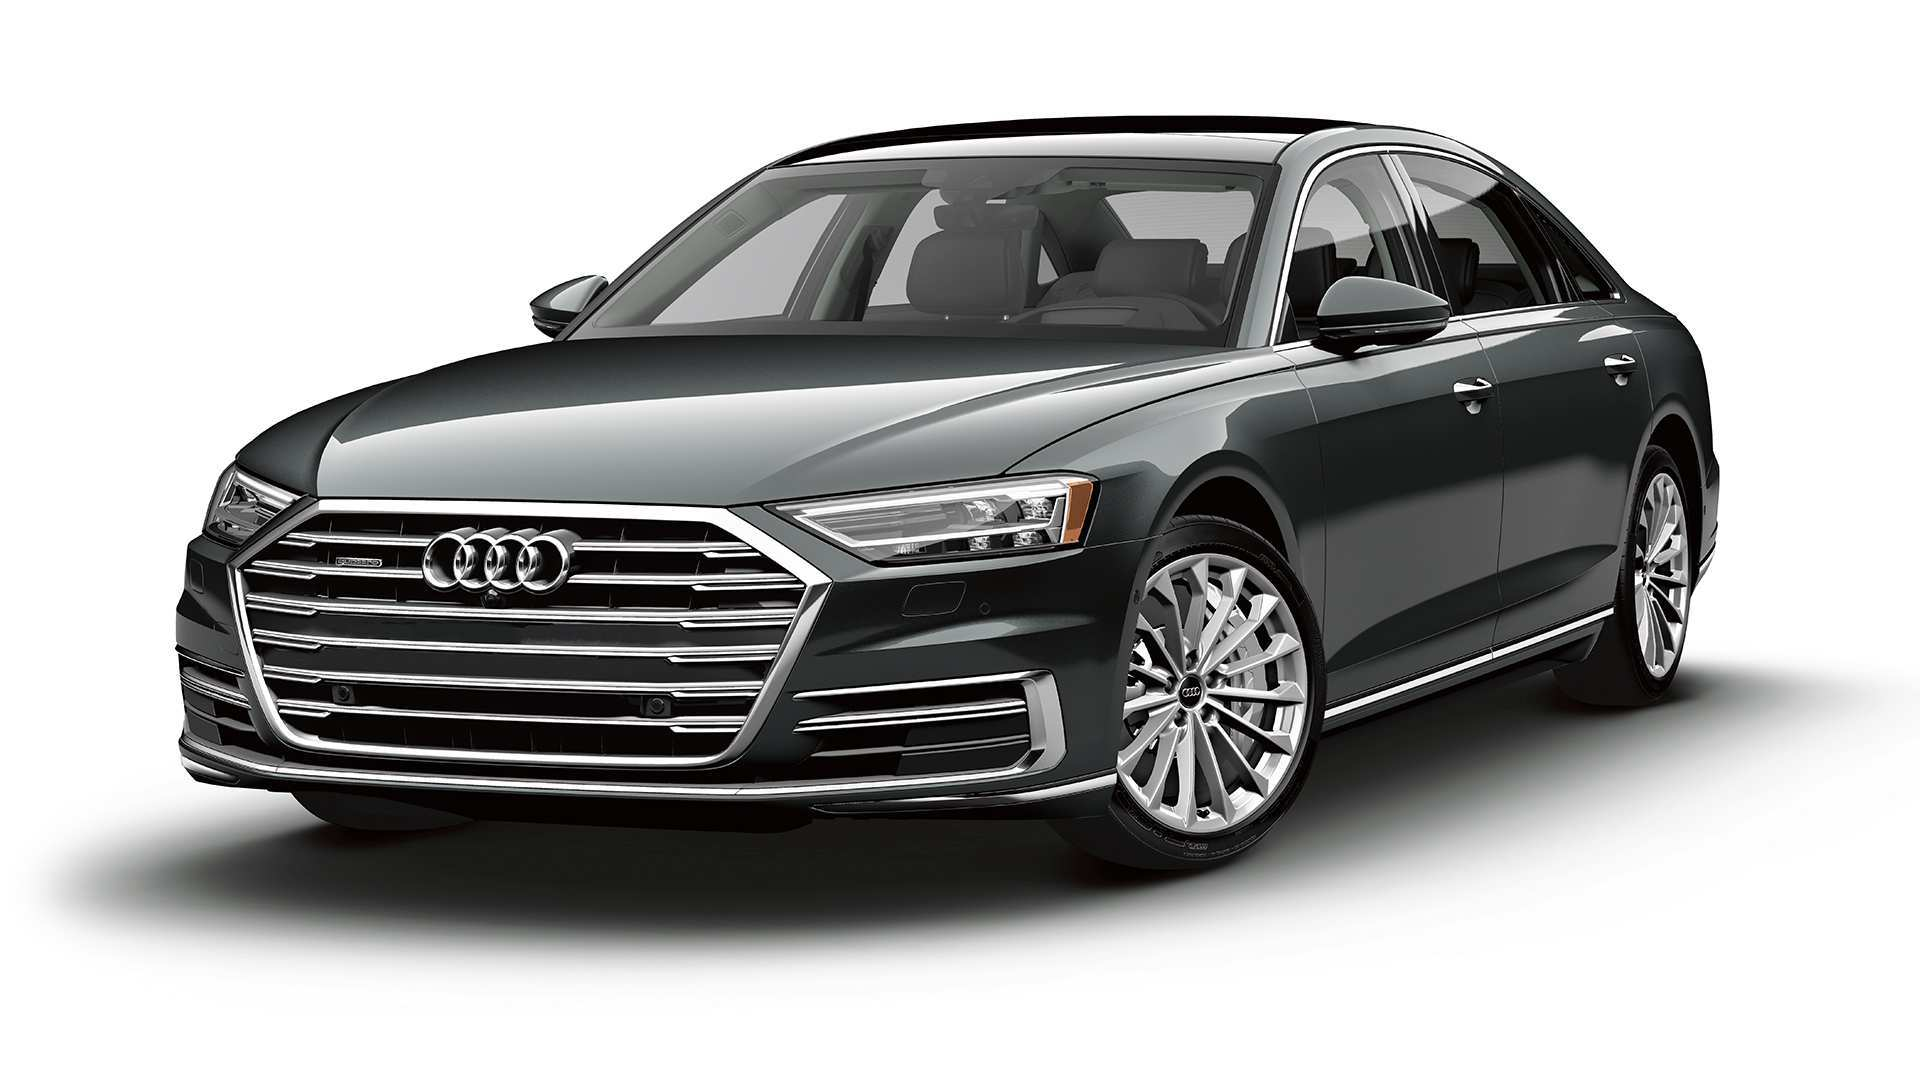 40 All New 2019 Audi A8 Features Review And Release Date